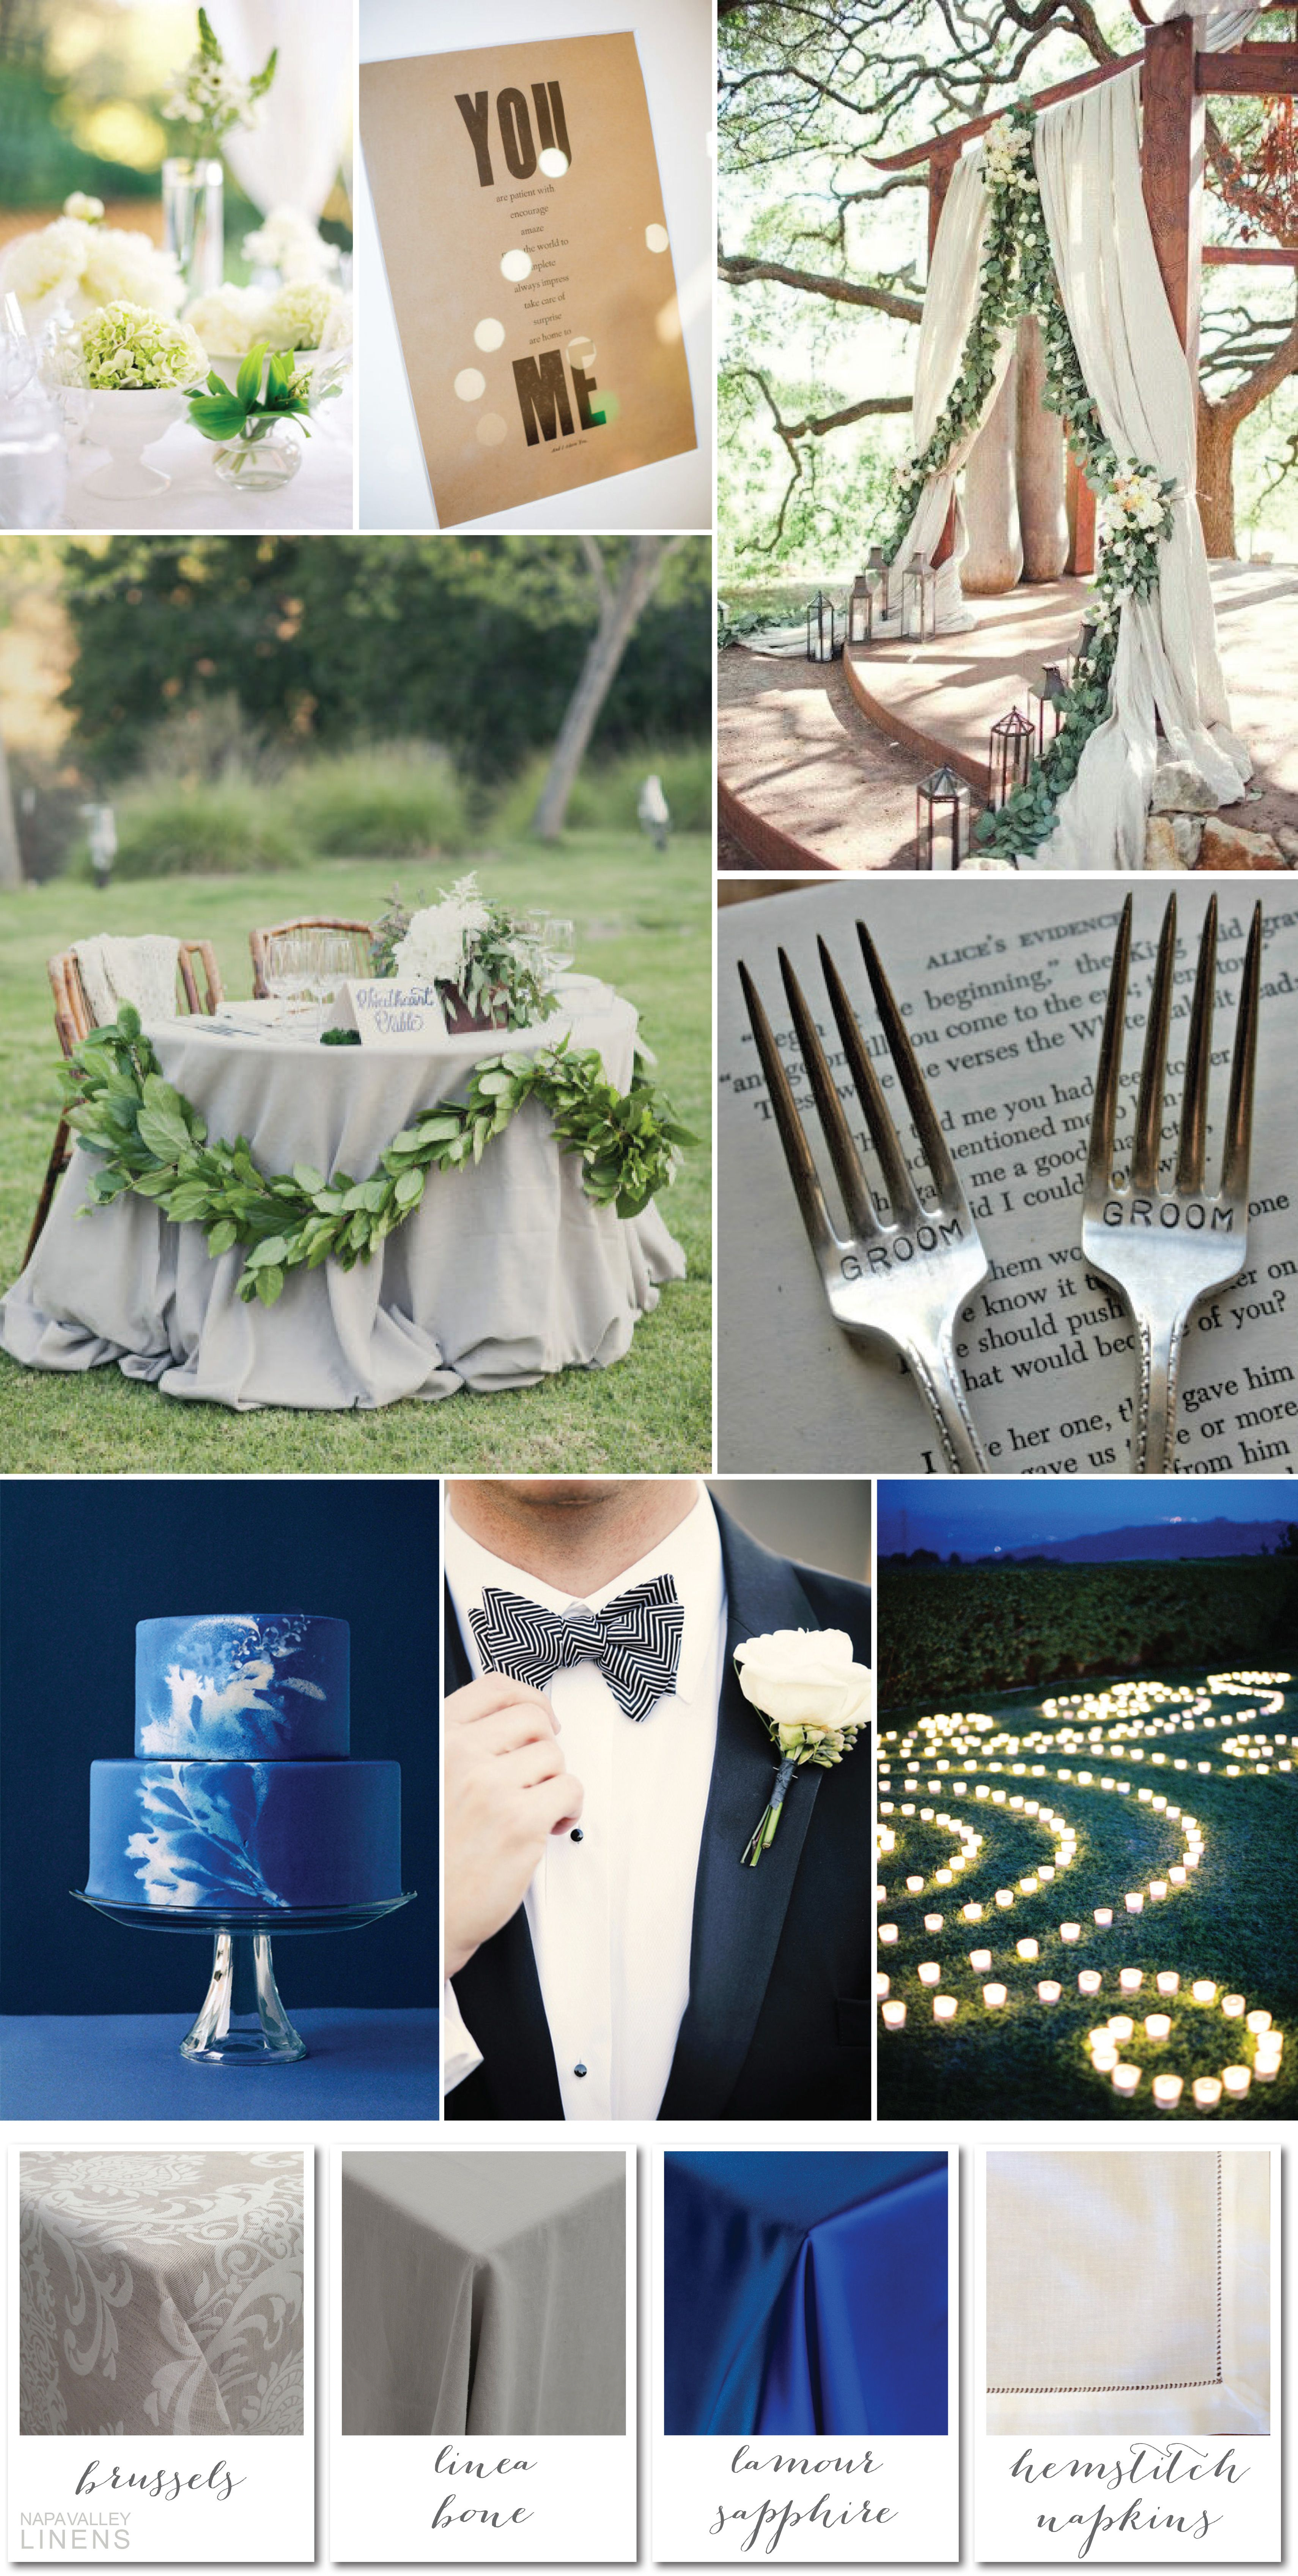 elegant same sex wedding ideas in linen and sapphire blue